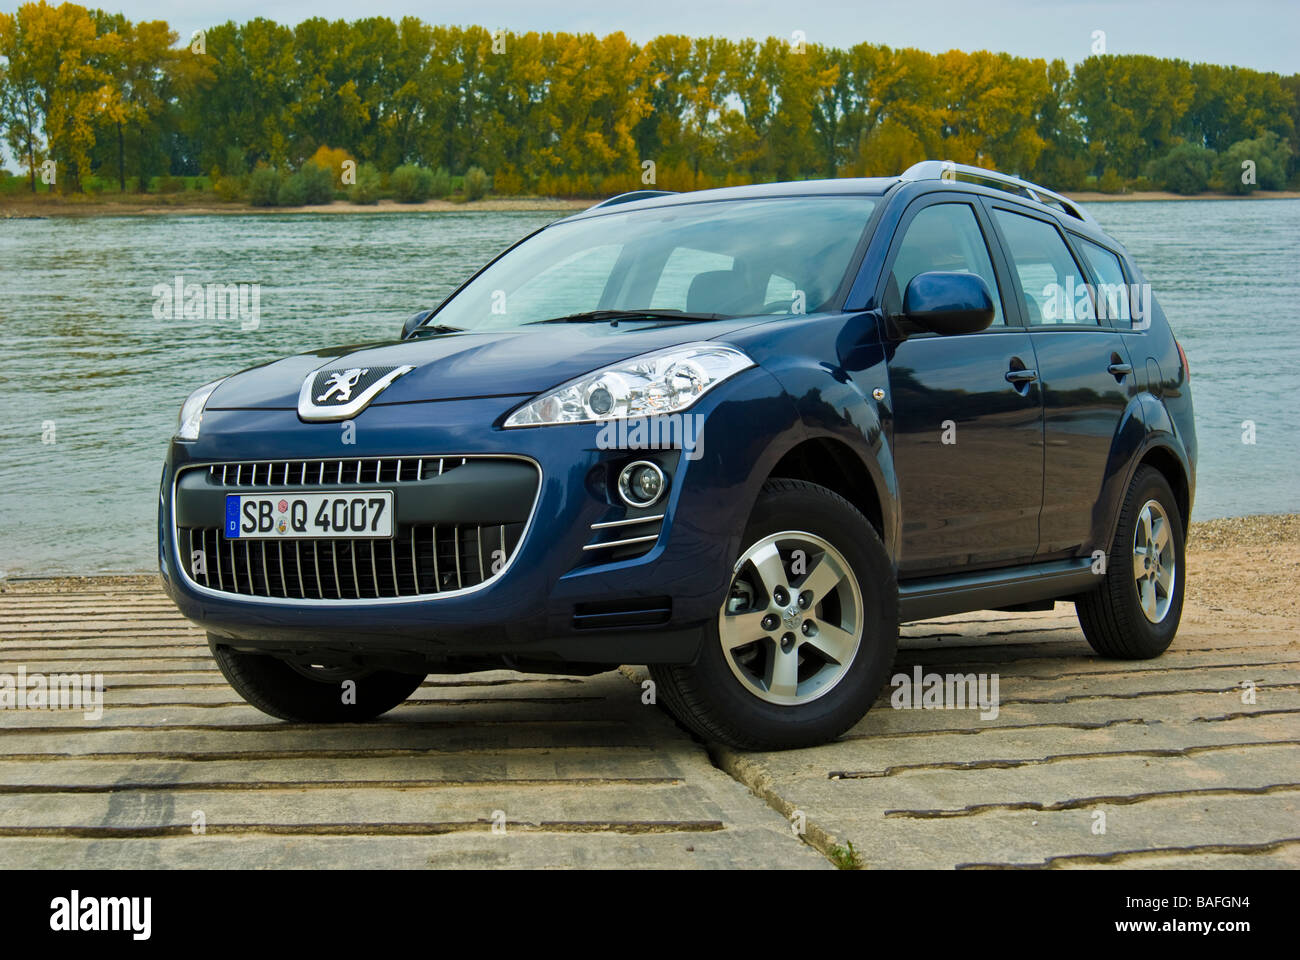 blue peugeot 4007 suv at rhine river front view stock photo royalty free image 23699344 alamy. Black Bedroom Furniture Sets. Home Design Ideas